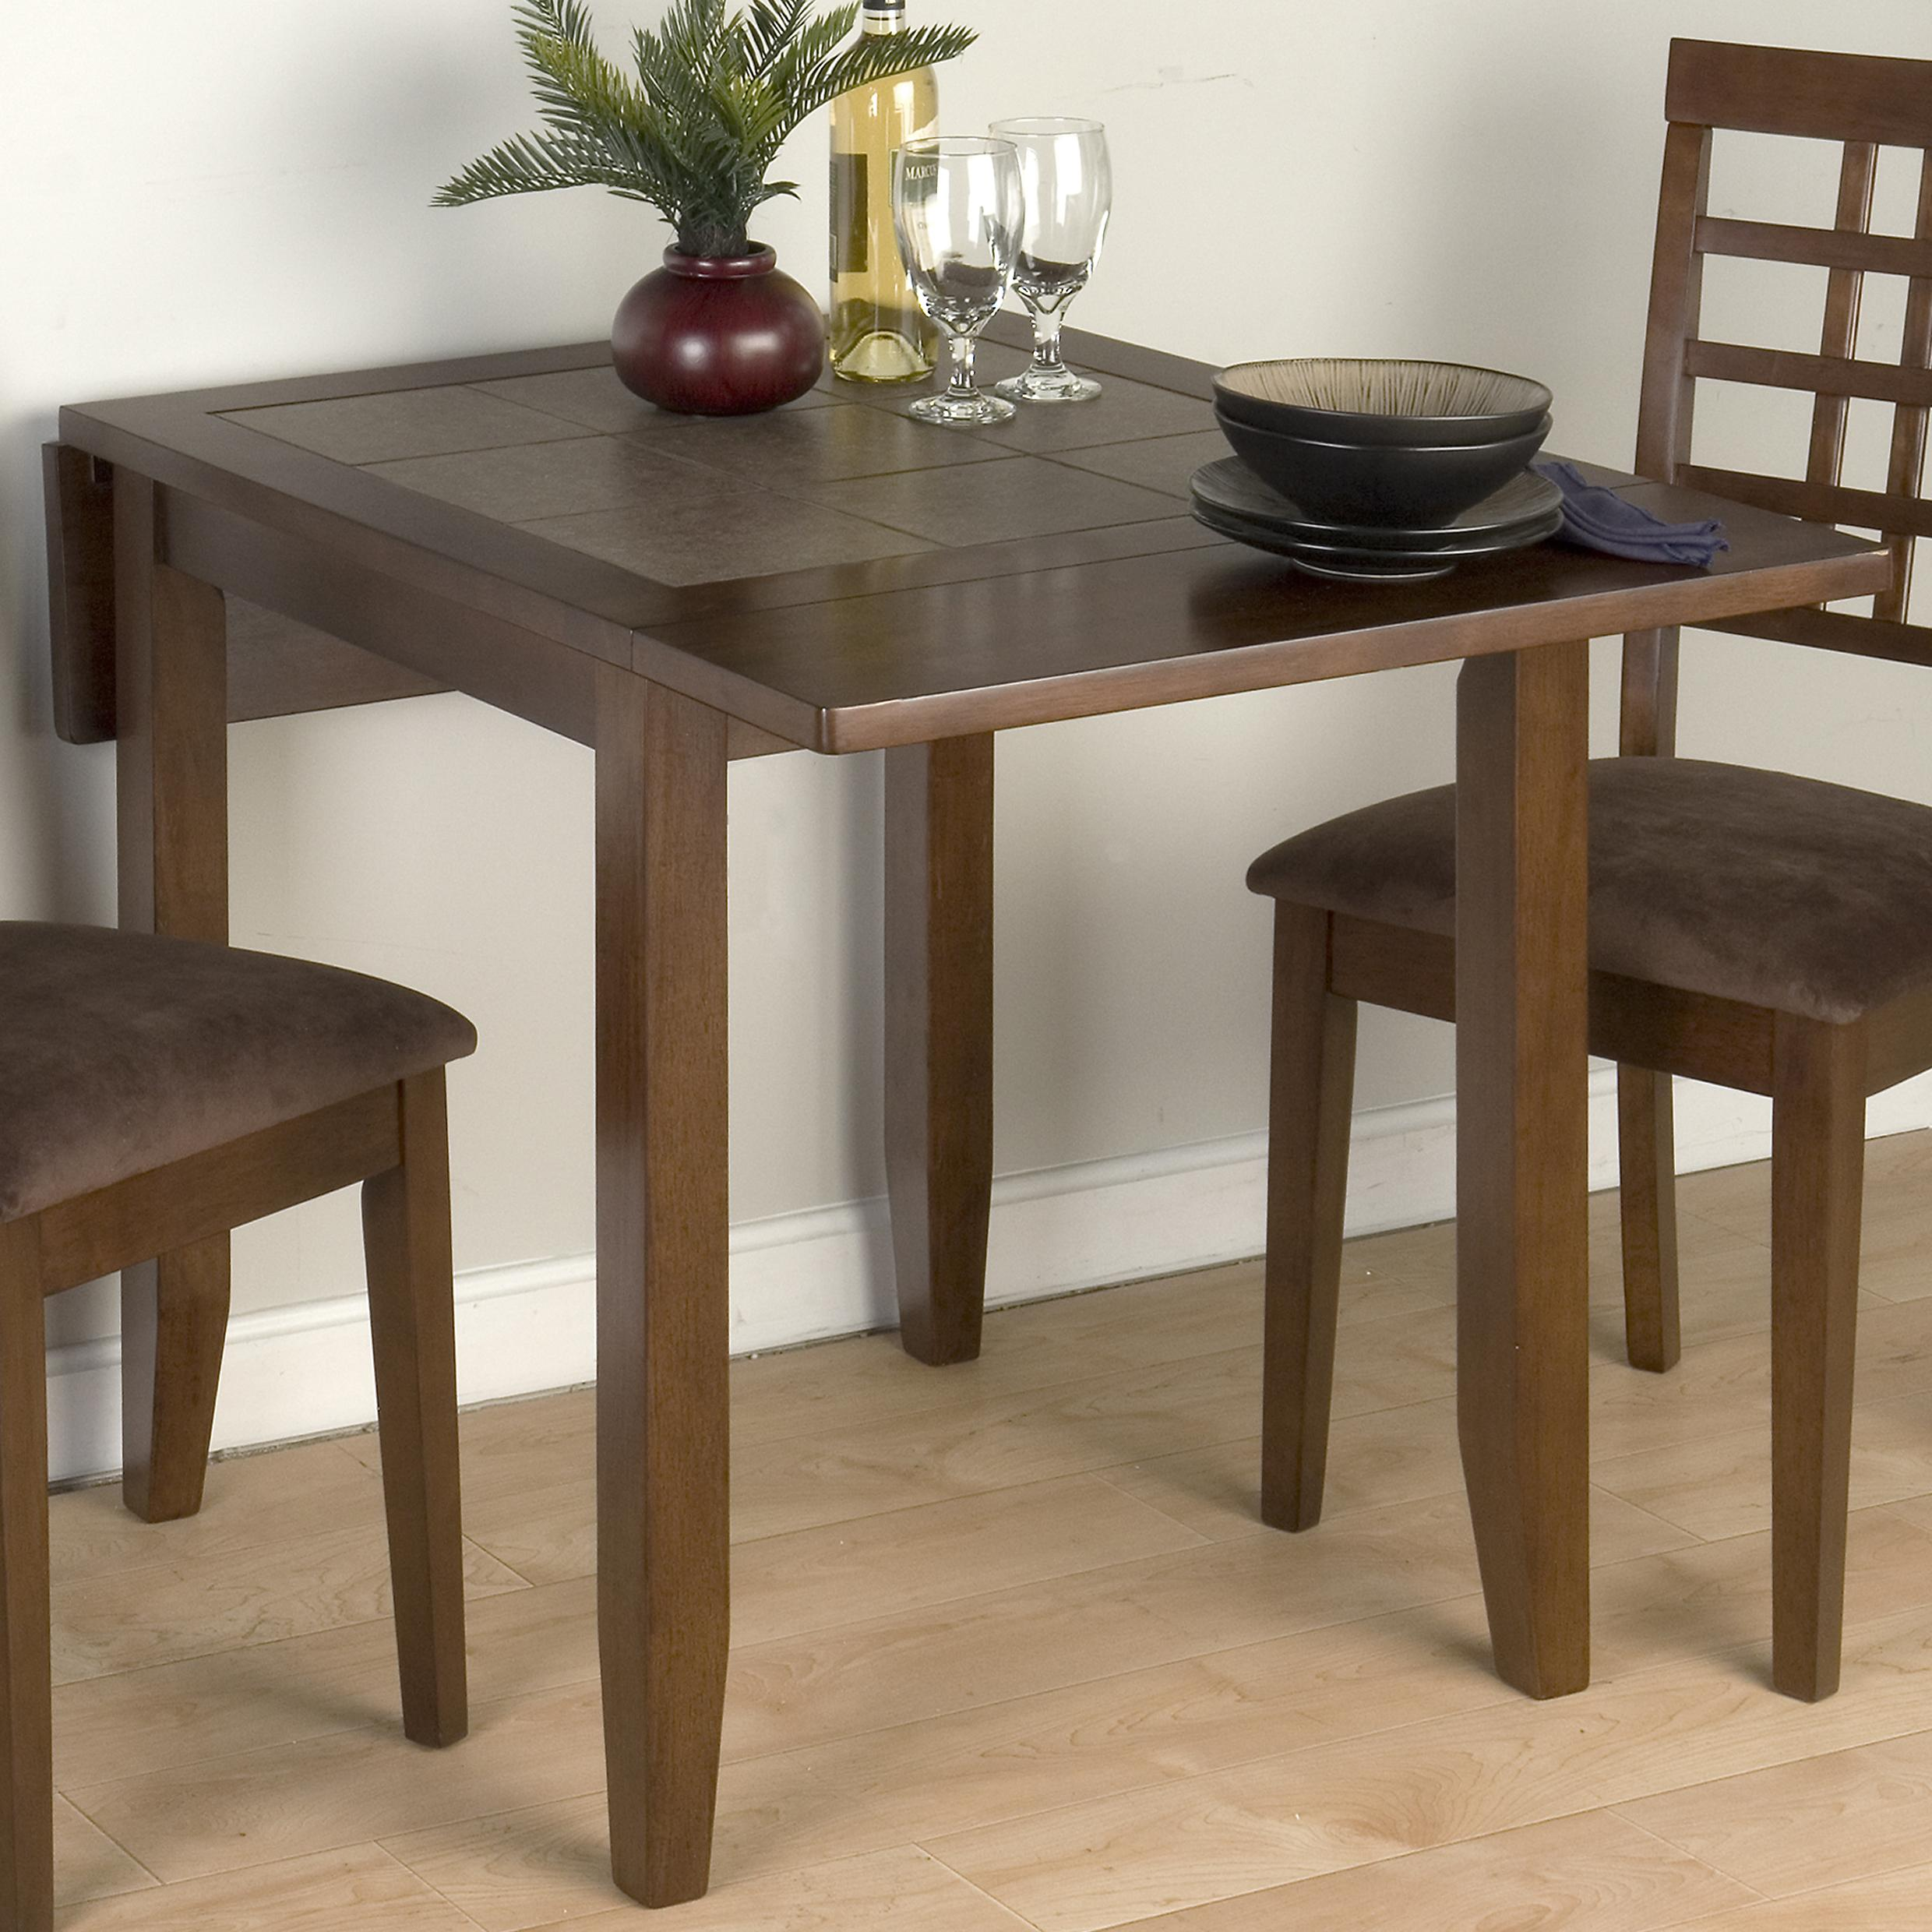 Jofran Chelsea Double Drop-Leaf Table - Item Number: 976-30